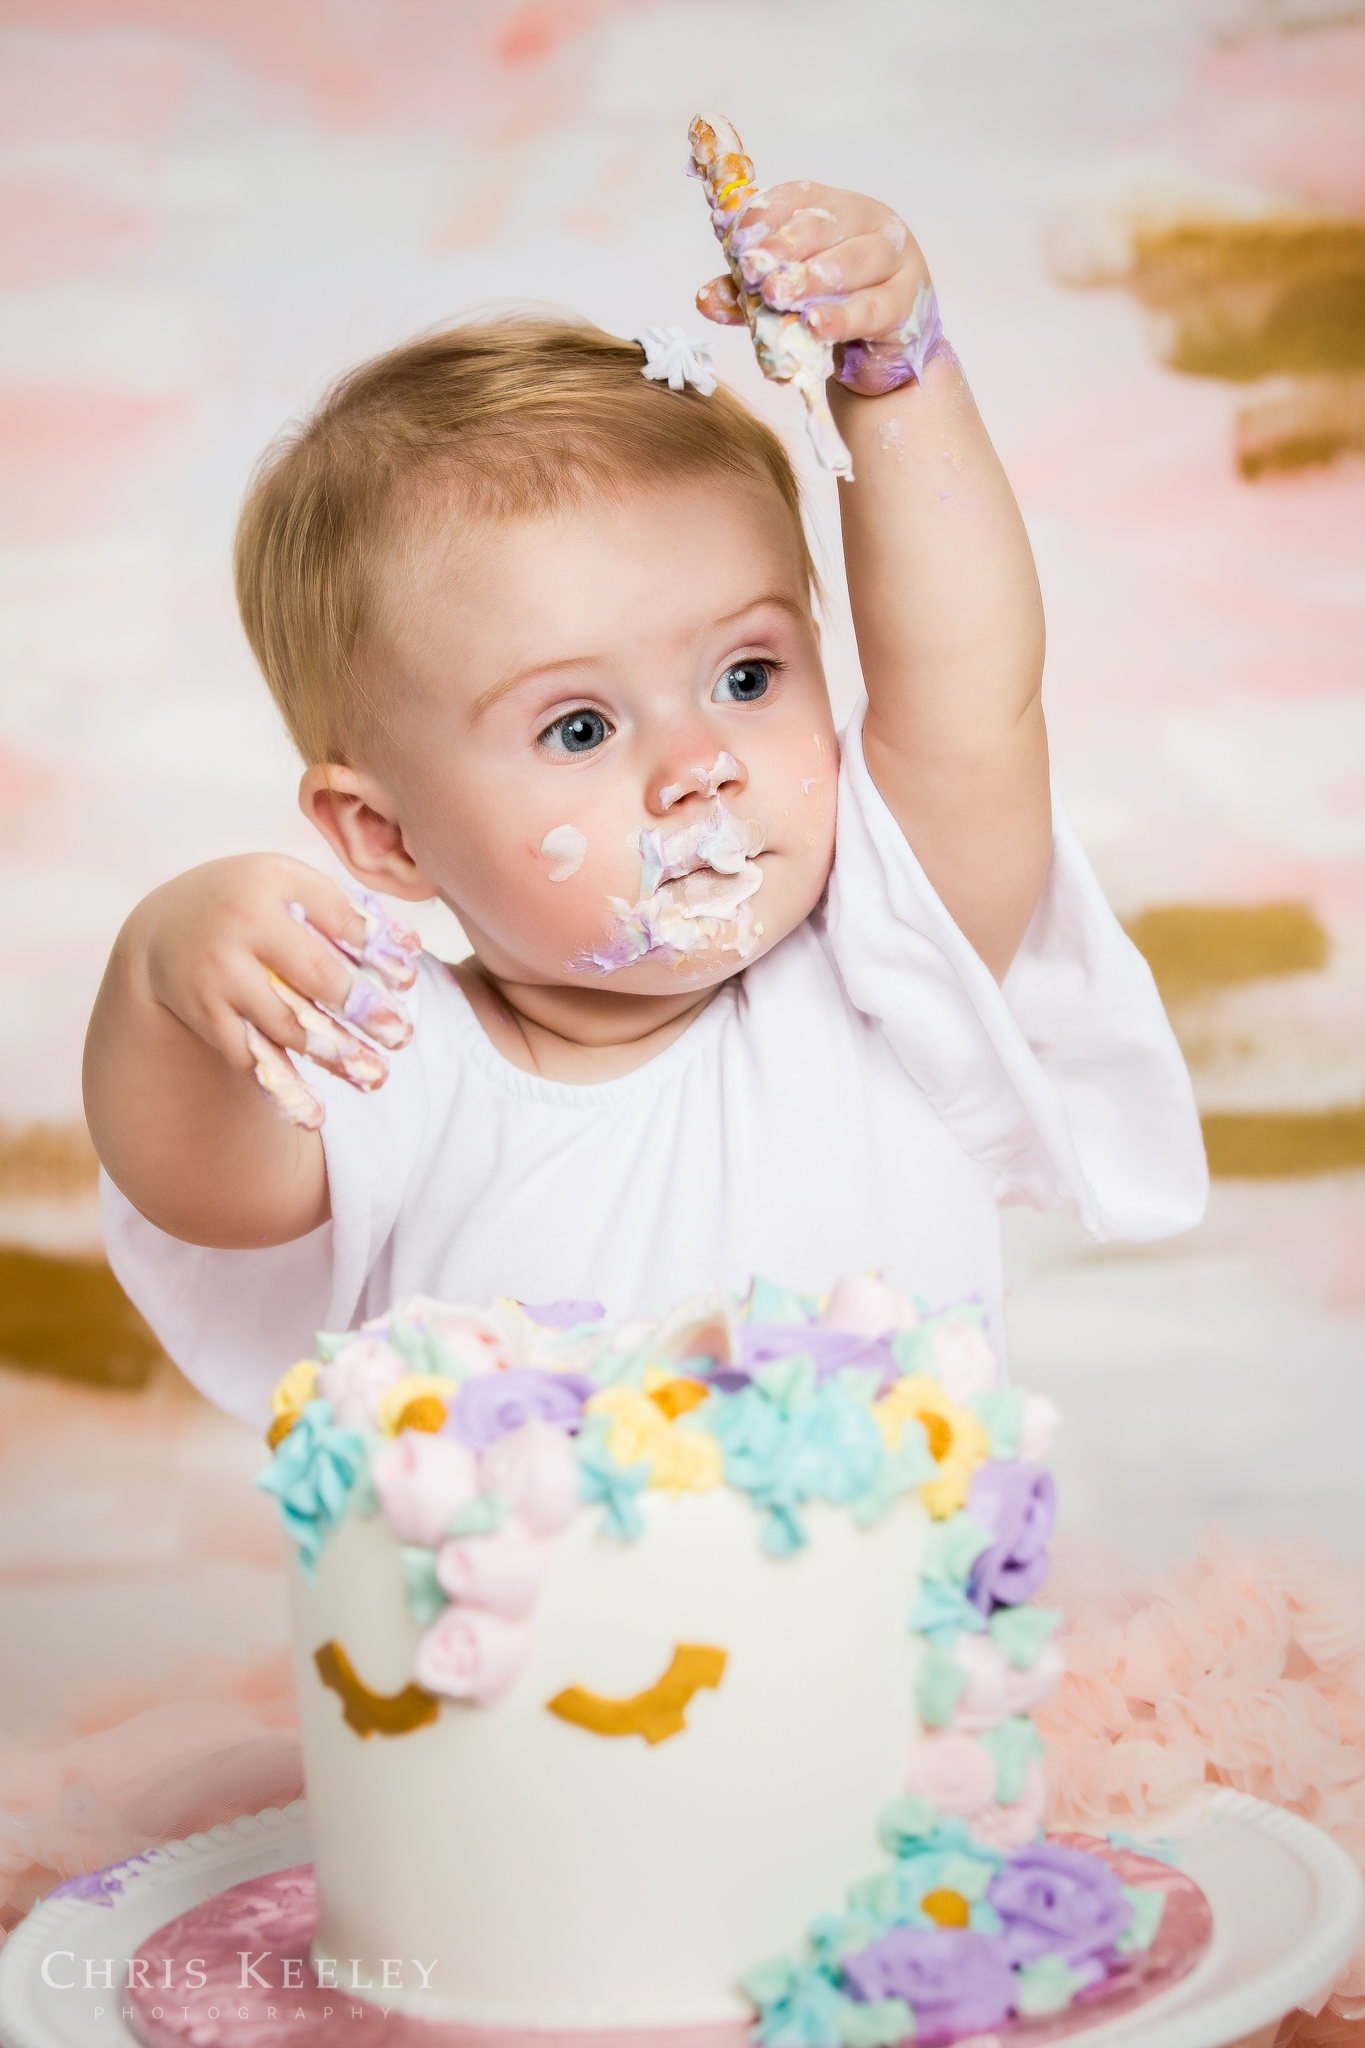 gwendolyn-one-year-cake-smash-dover-new-hampshire-photographer-10.jpg